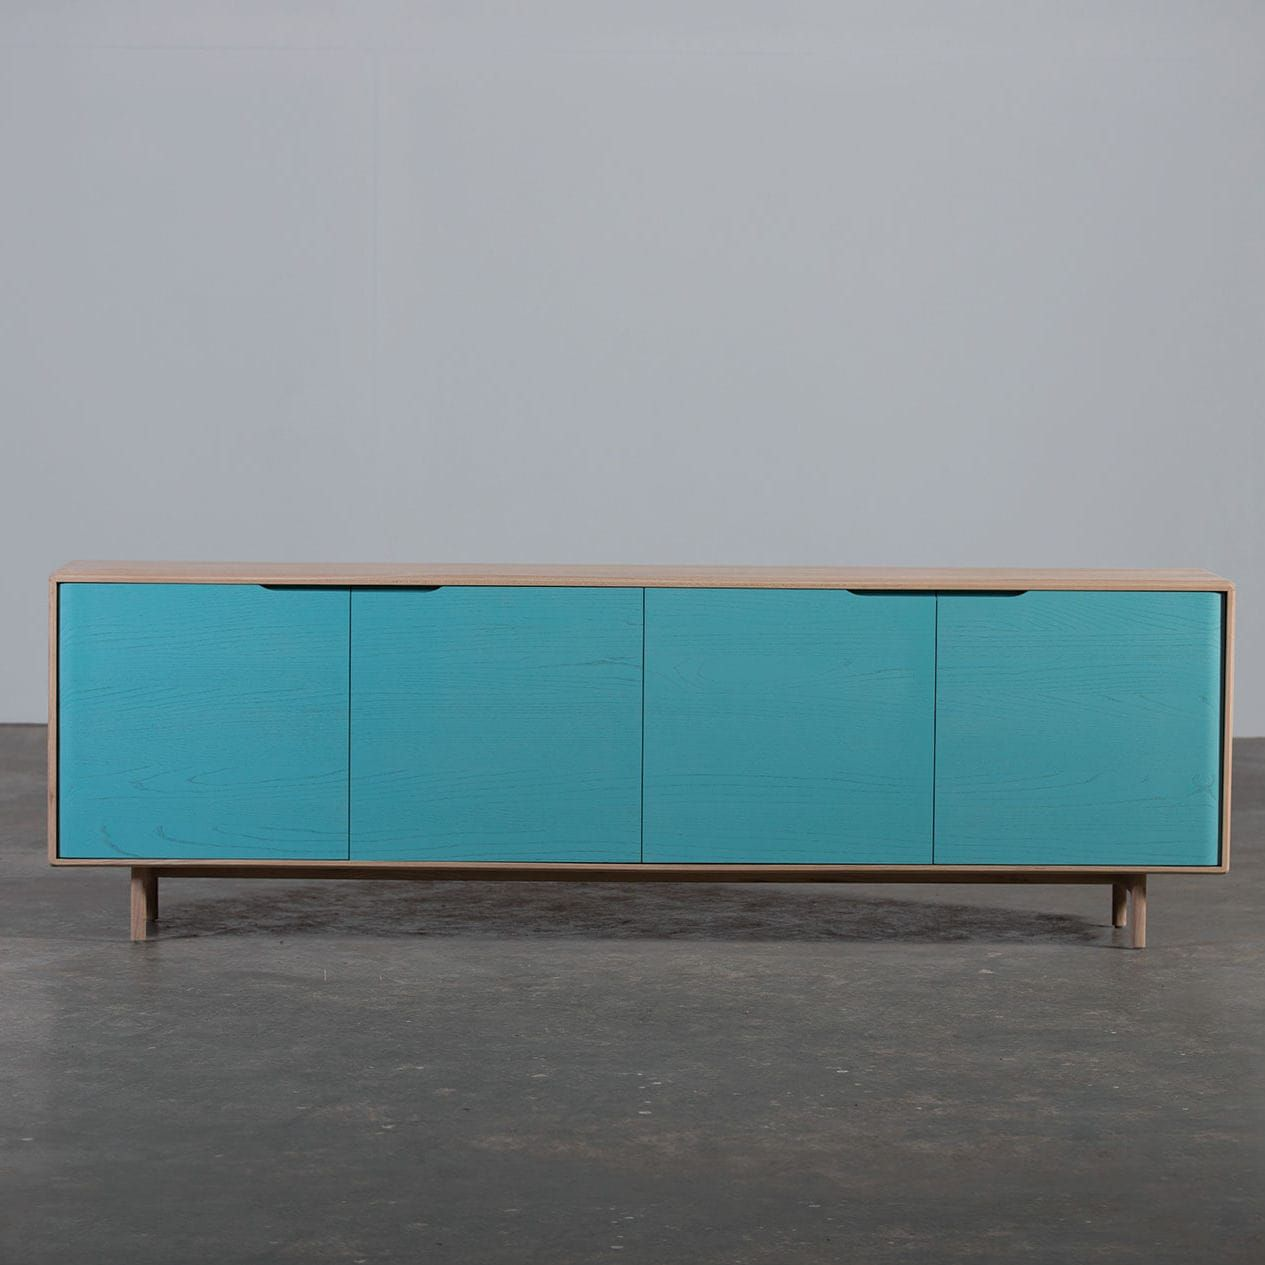 Contemporary sideboard   elm   maple   cherrywood   INVITO by Michael  Schneider   Artisan Solid  Contemporary SideboardsSolid Wood Furniture CredenzaCabinets. Contemporary sideboard   elm   maple   cherrywood   INVITO by